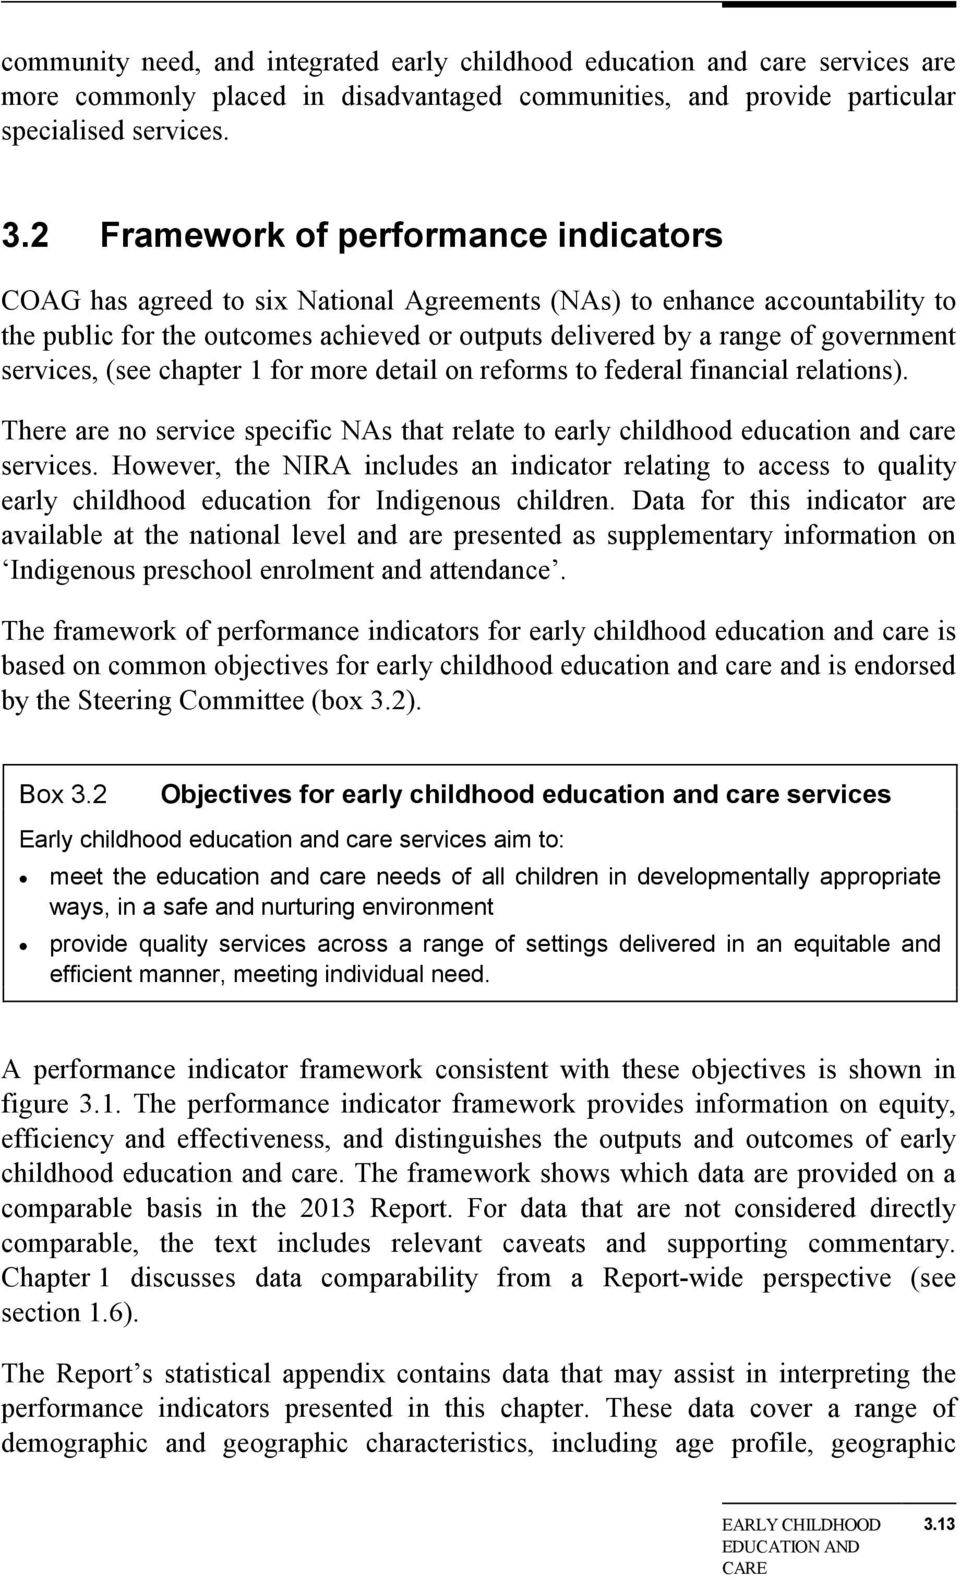 services, (see chapter 1 for more detail on reforms to federal financial relations). There are no service specific NAs that relate to early childhood education and care services.